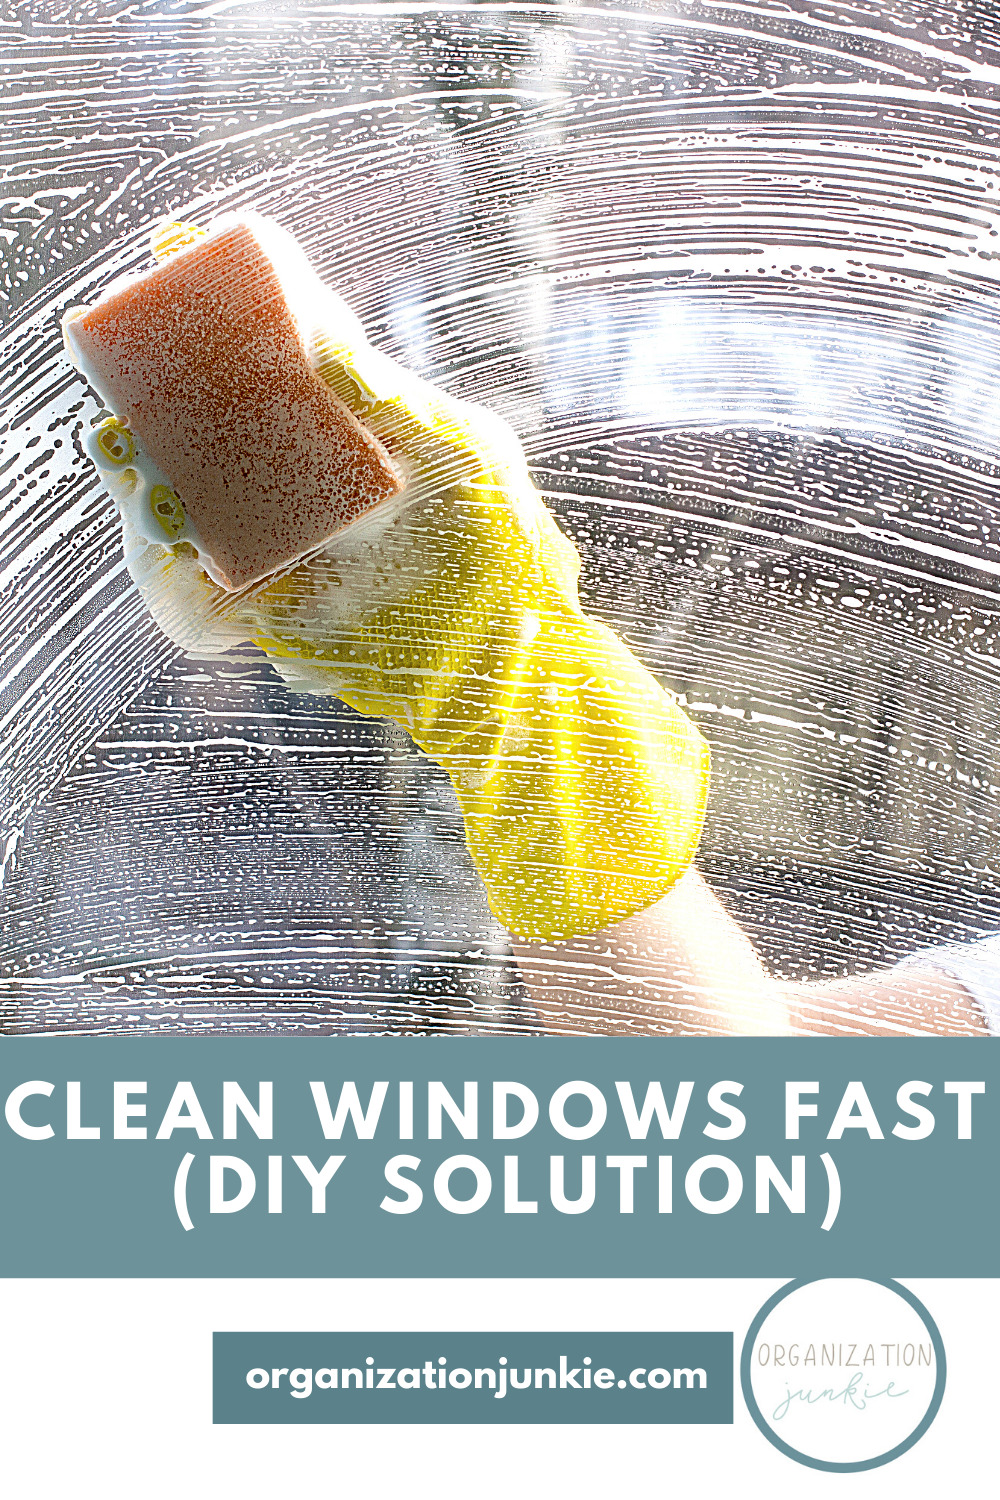 You don't need a towel to clean windows fast. All you need is a simple homemade window cleaning solution, a sponge, and your garden hose. Just spray and walk away! #organizationjunkieblog #cleanwindowsfast #homemadewindowcleaner